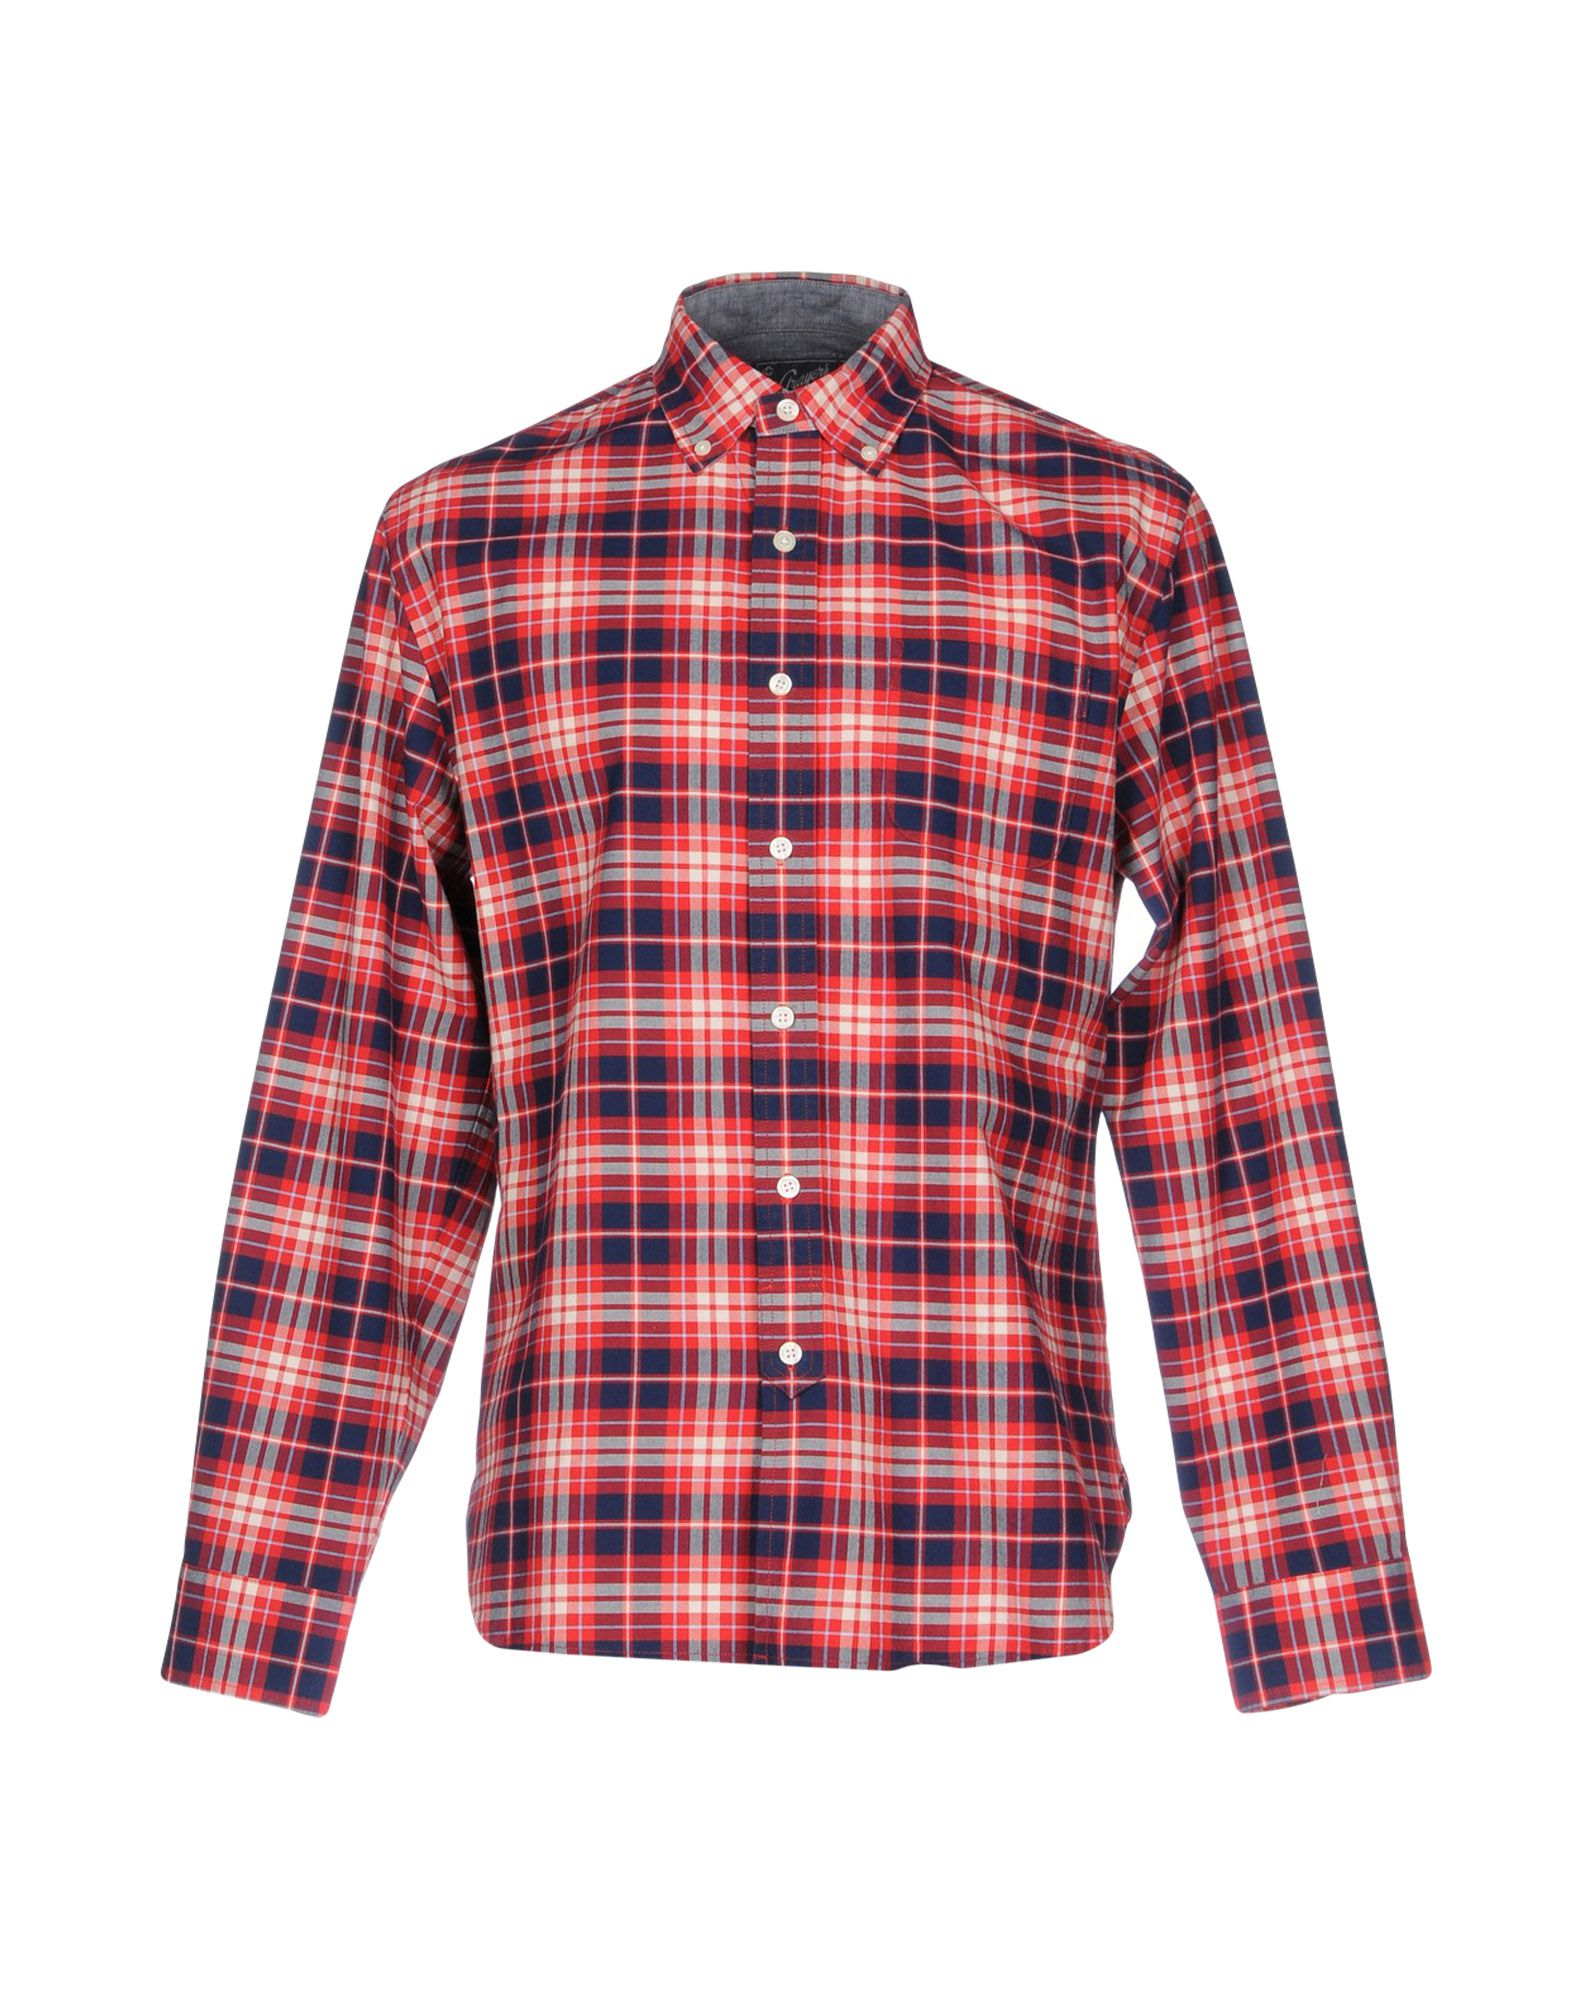 GRAYERS Checked Shirt in Red